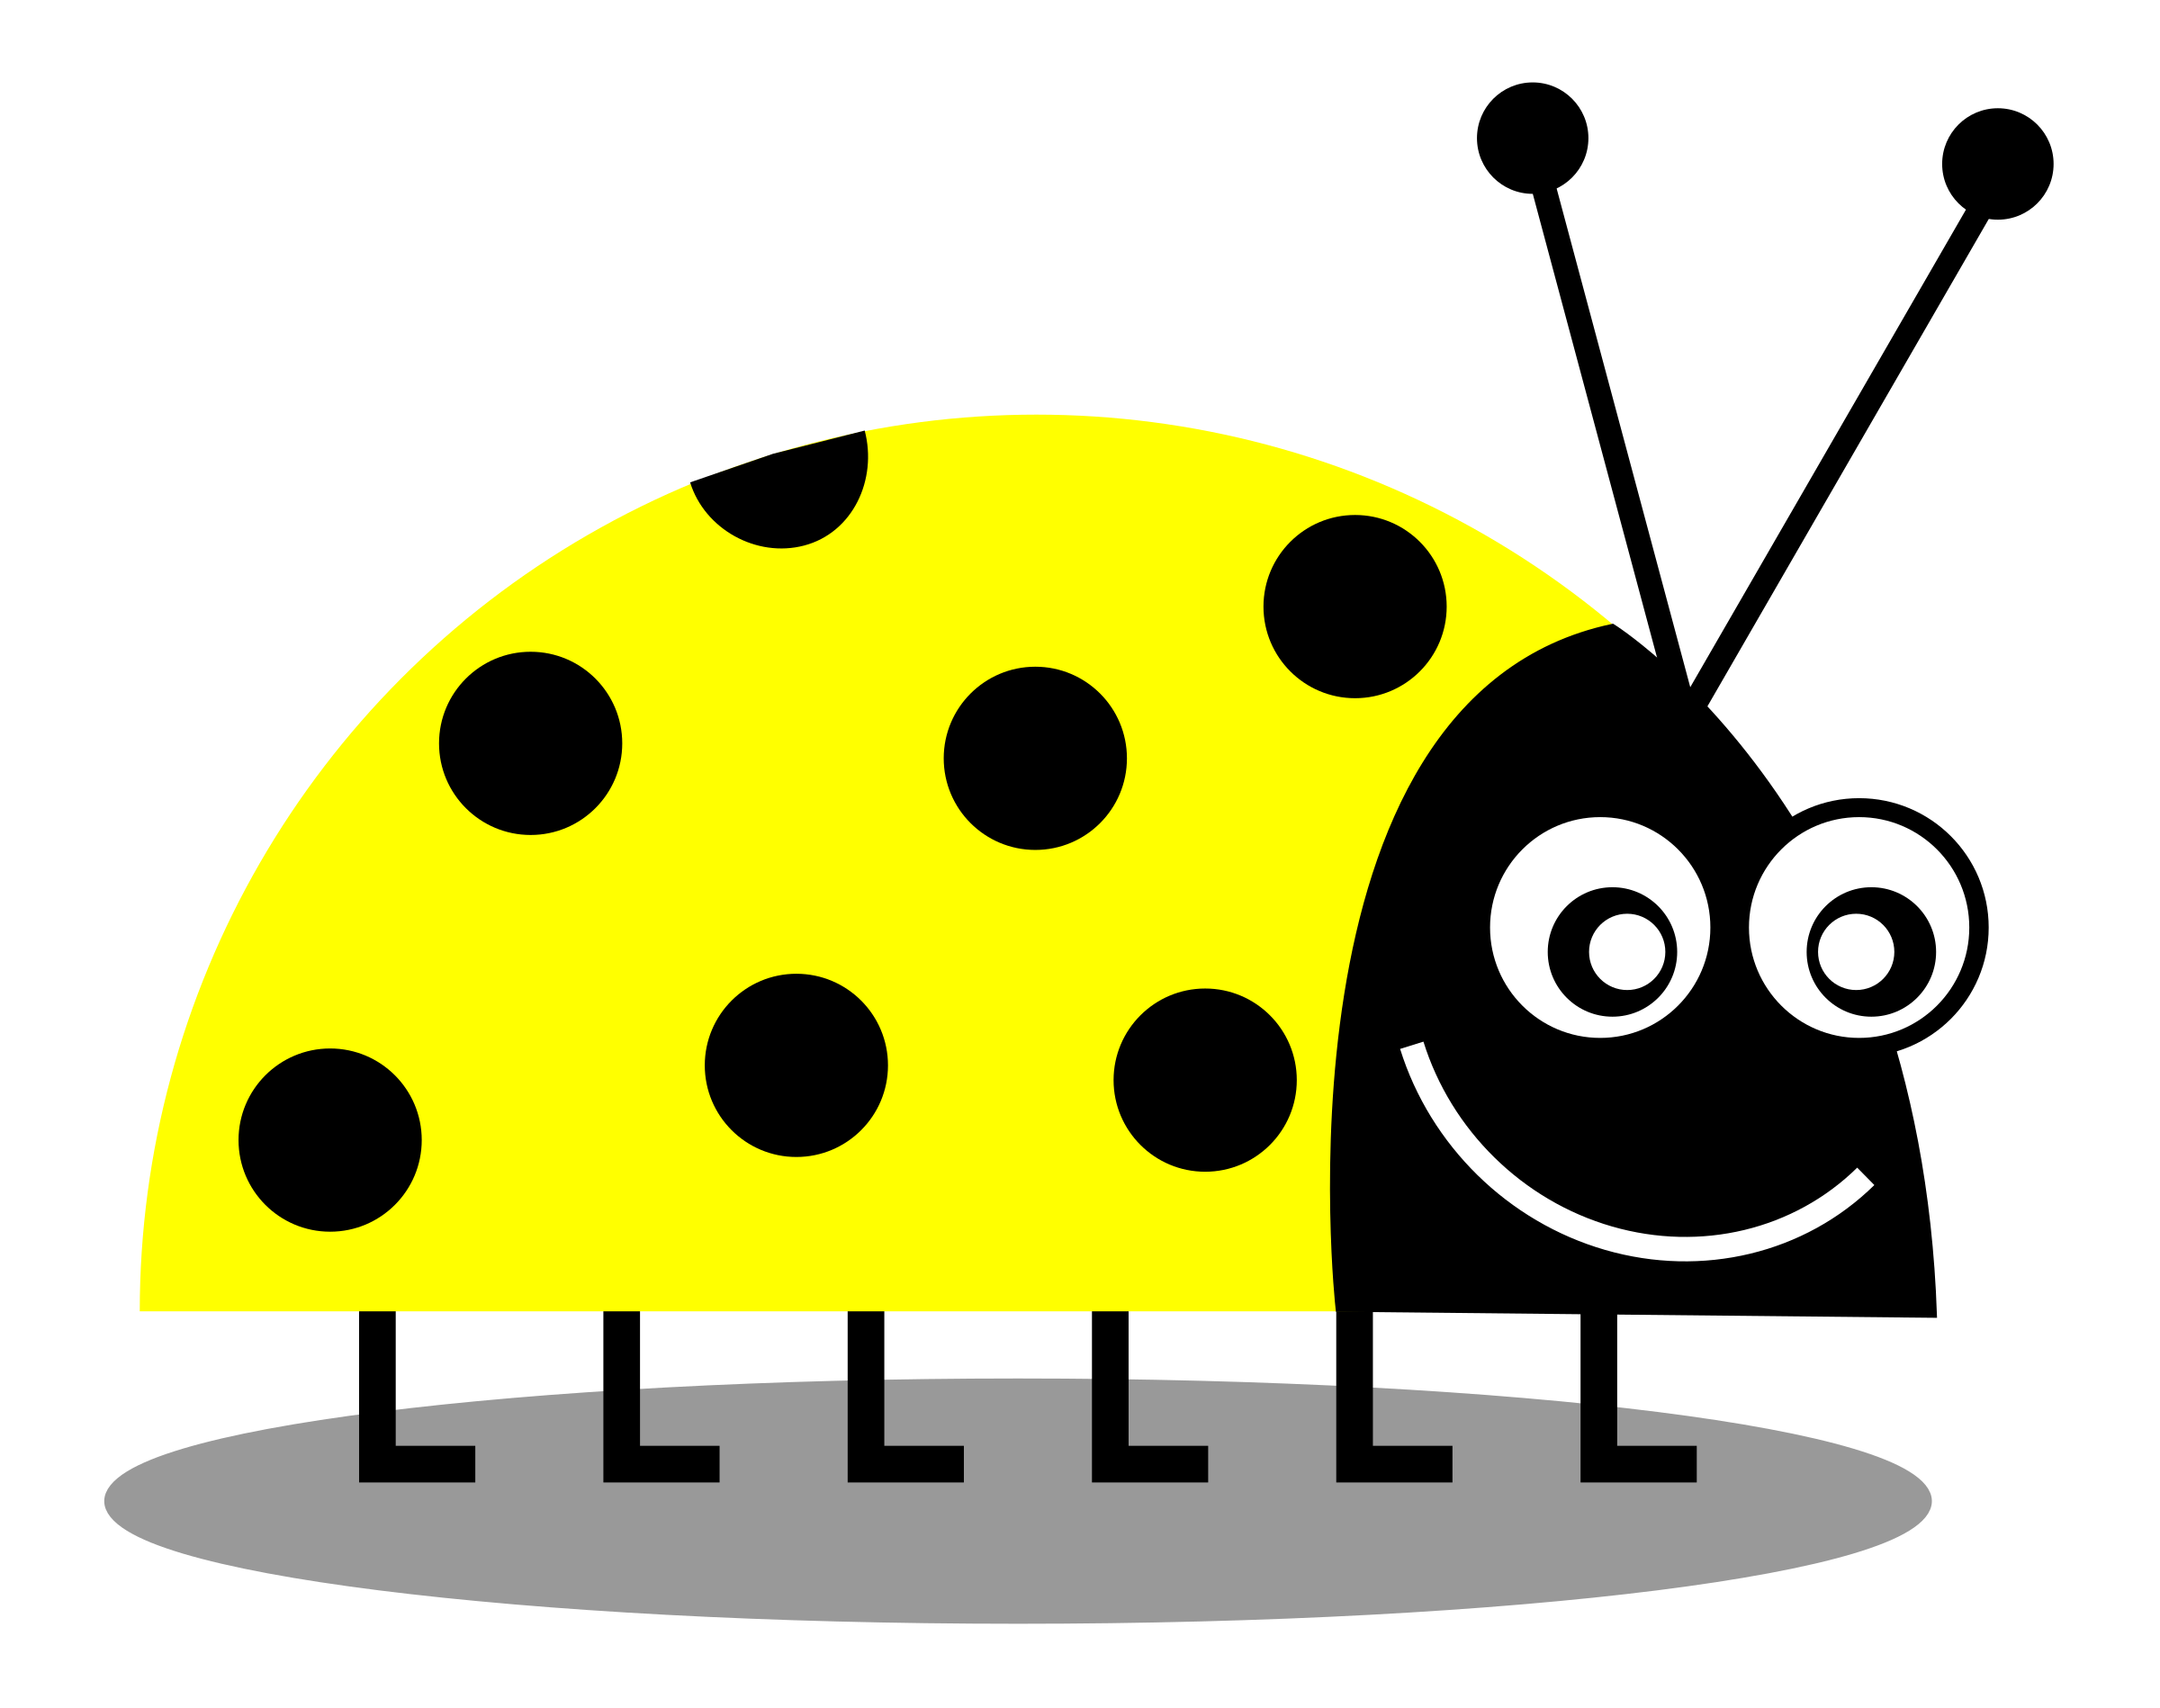 Wednesday clipart yellow. Teal ladybug free collection